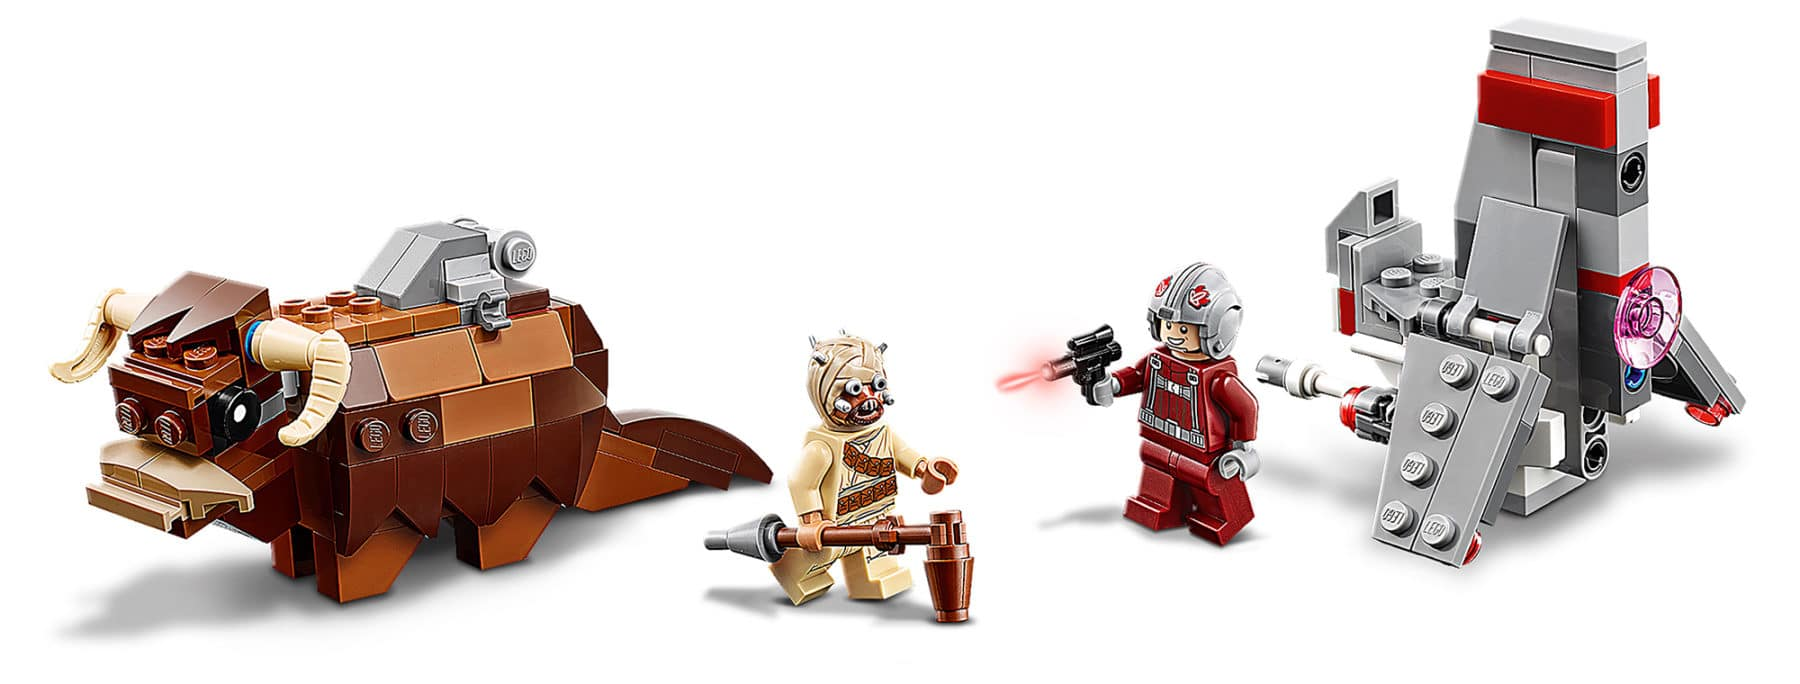 LEGO 75265 Star Wars T-16 Skyhopper Vs. Bantha Microfighter